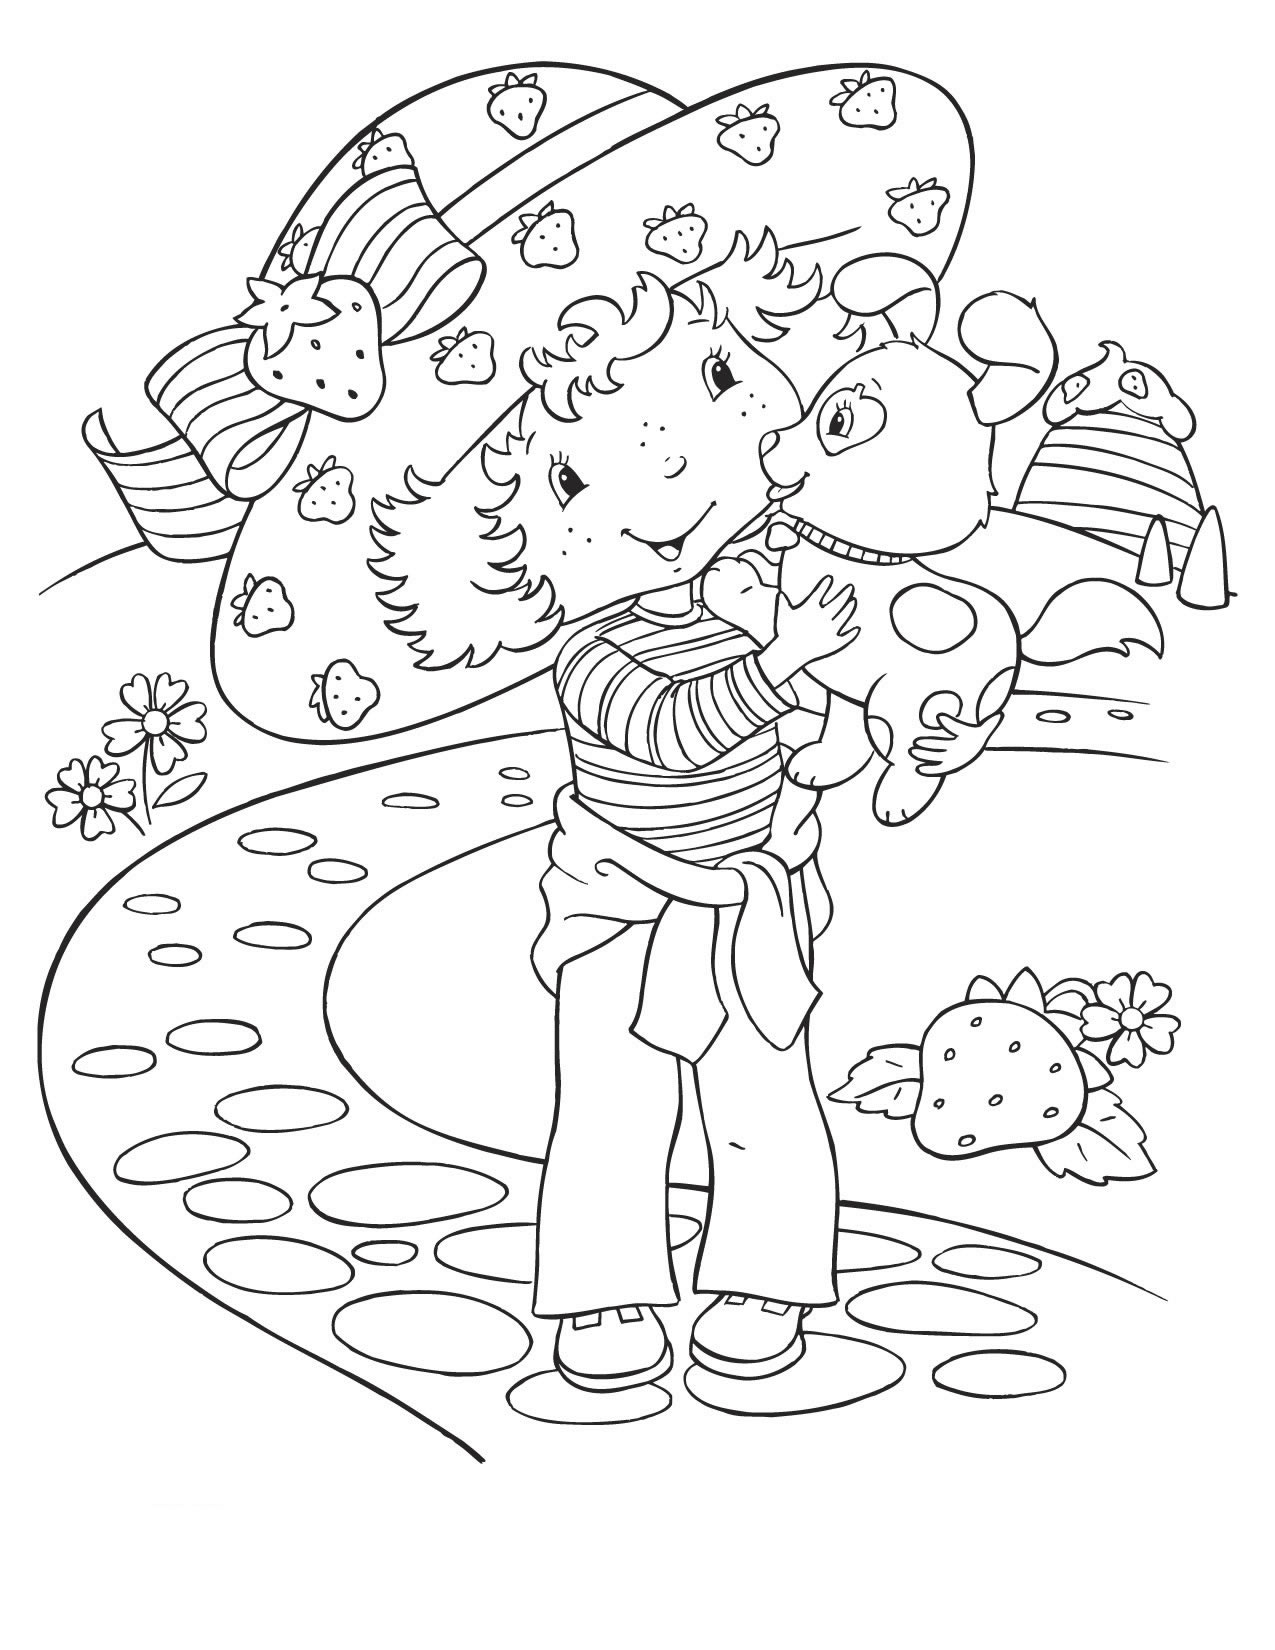 strawberry shortcake coloring pages free - photo#10